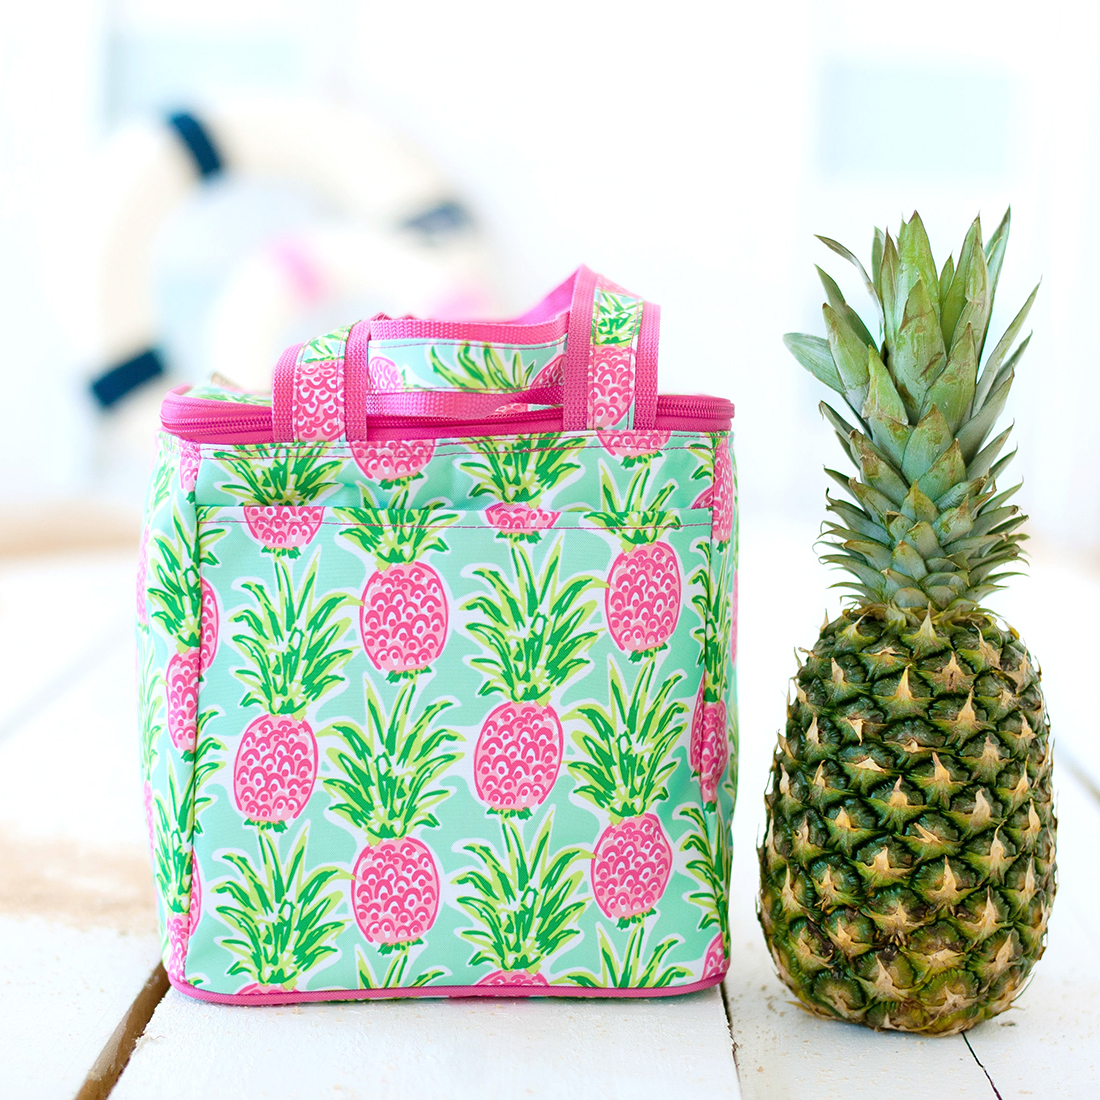 2020 Patterned Cooler Tote